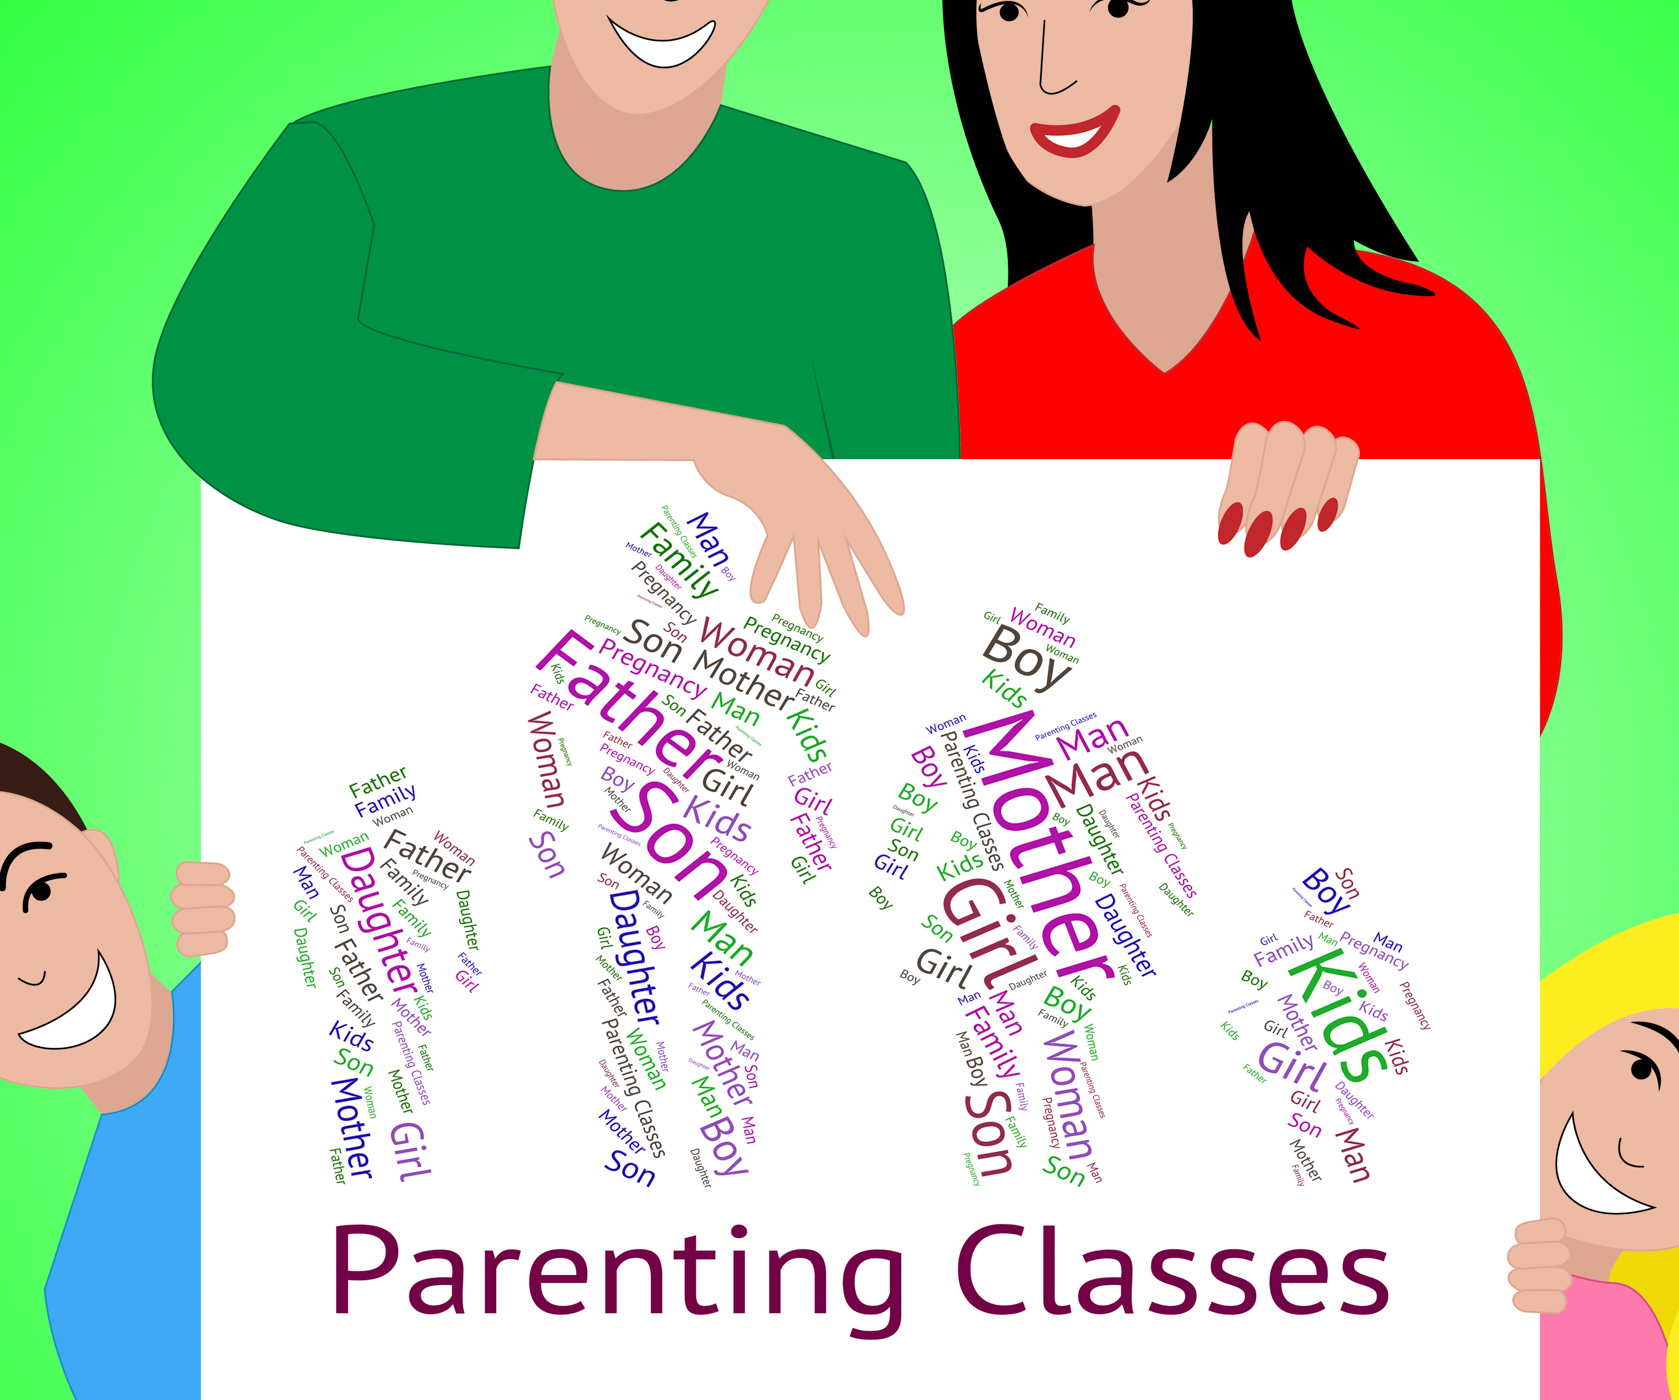 Parenting classes means mother and child and childhood photo